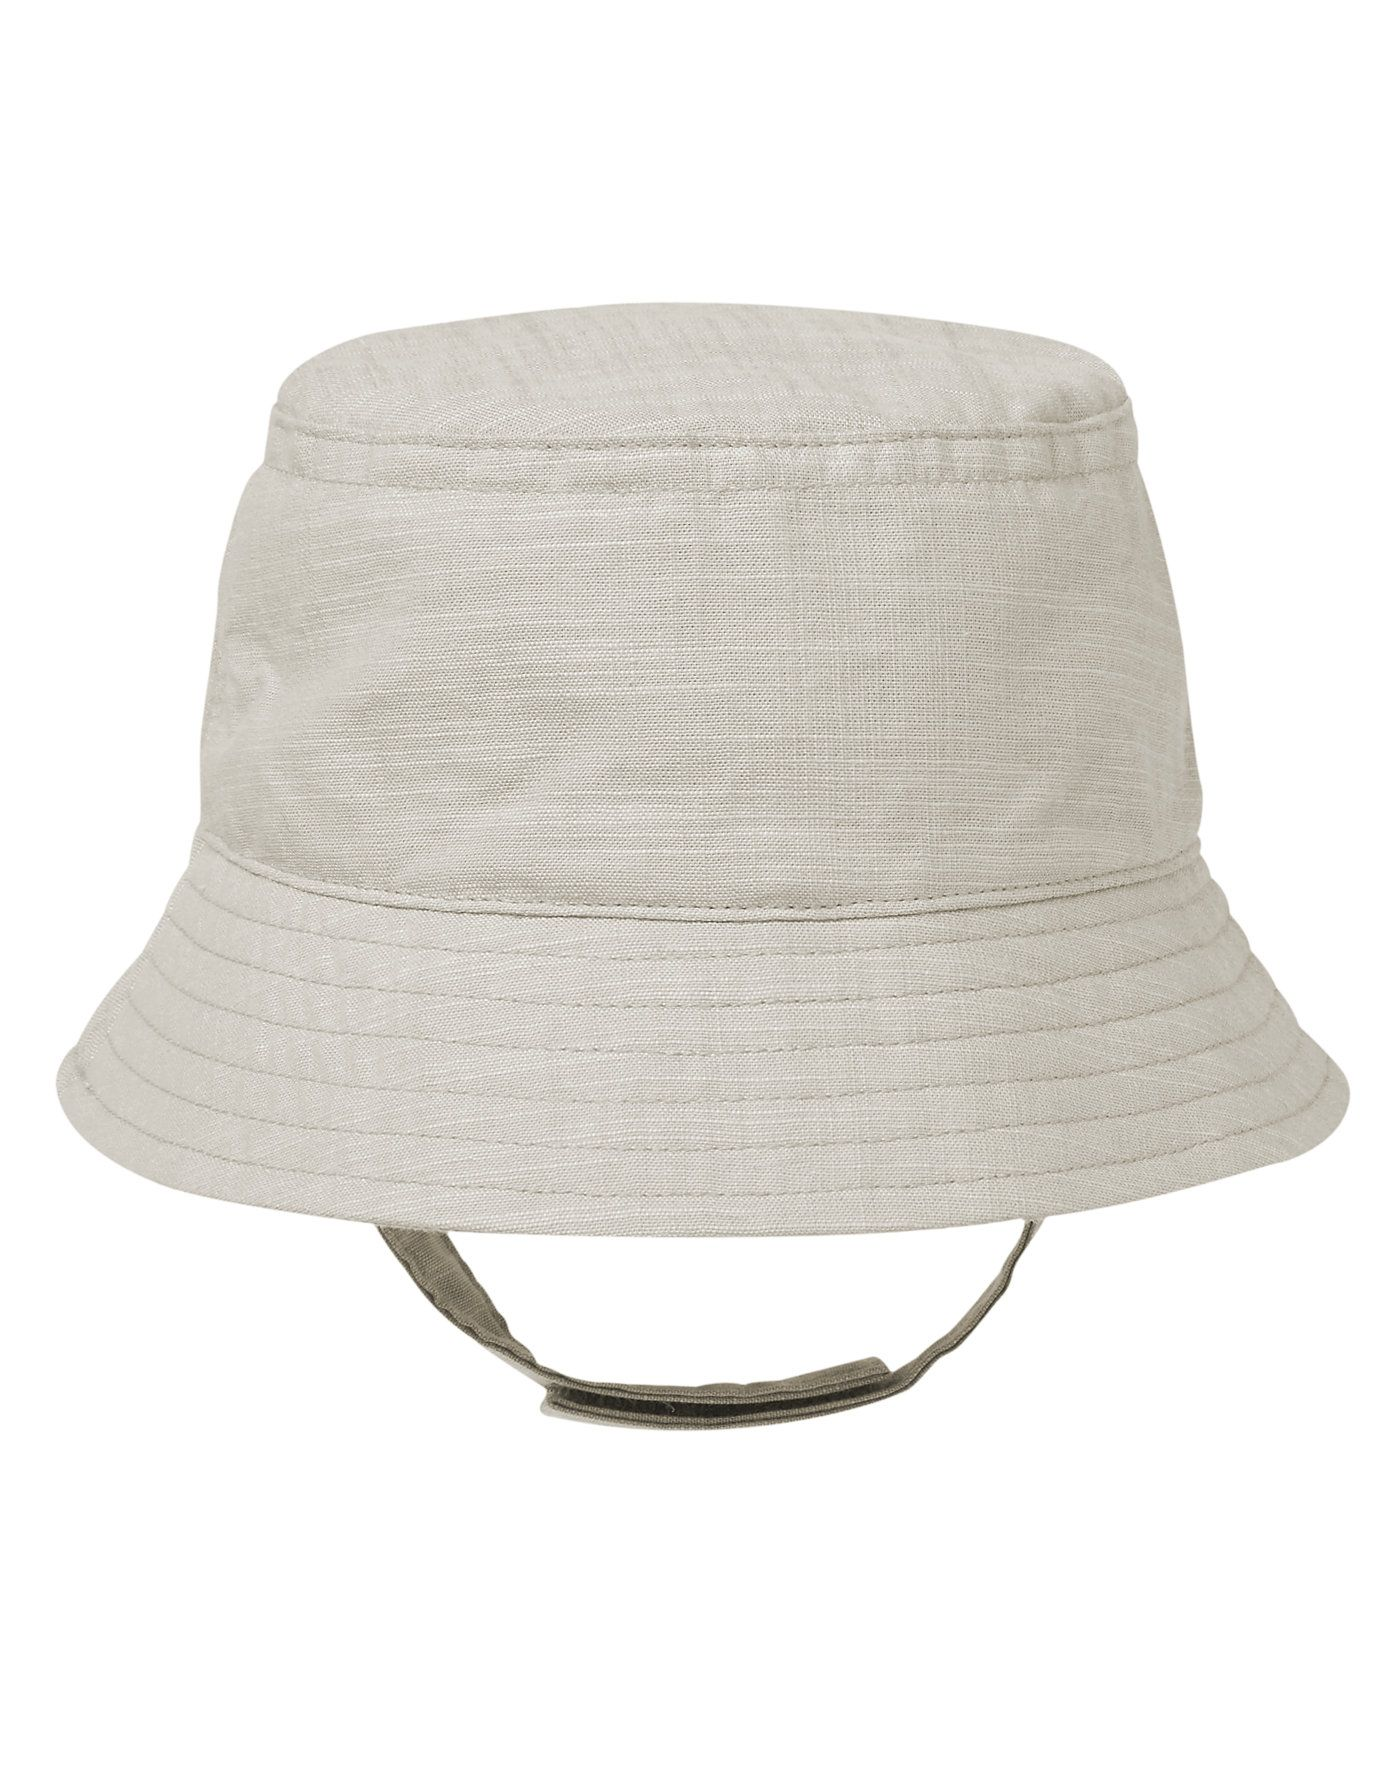 0cec4c4899027 Bucket Hat at Gymboree Collection Name  Good Day Grey (2015) Kids C